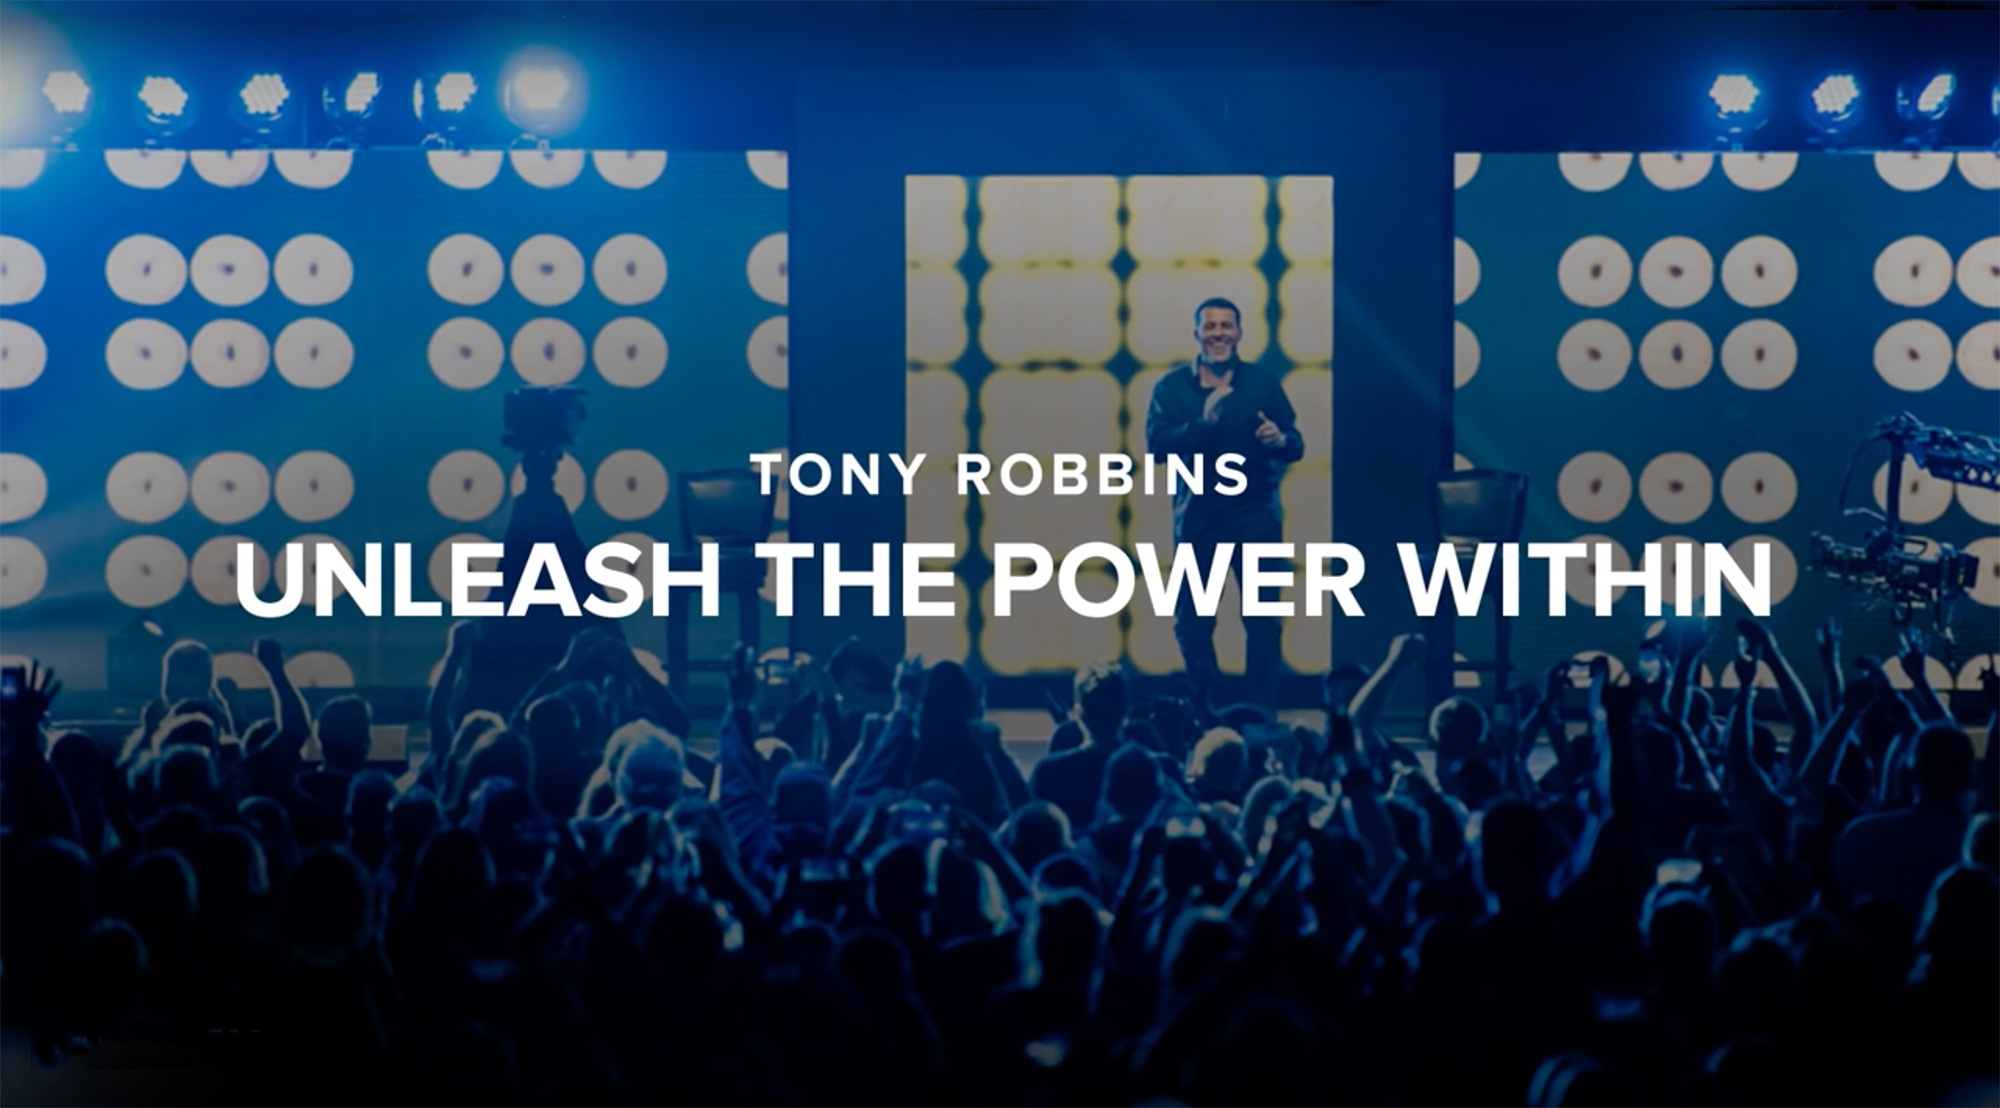 Tony Robbins / Ad Campaign /Unleash the Power Within